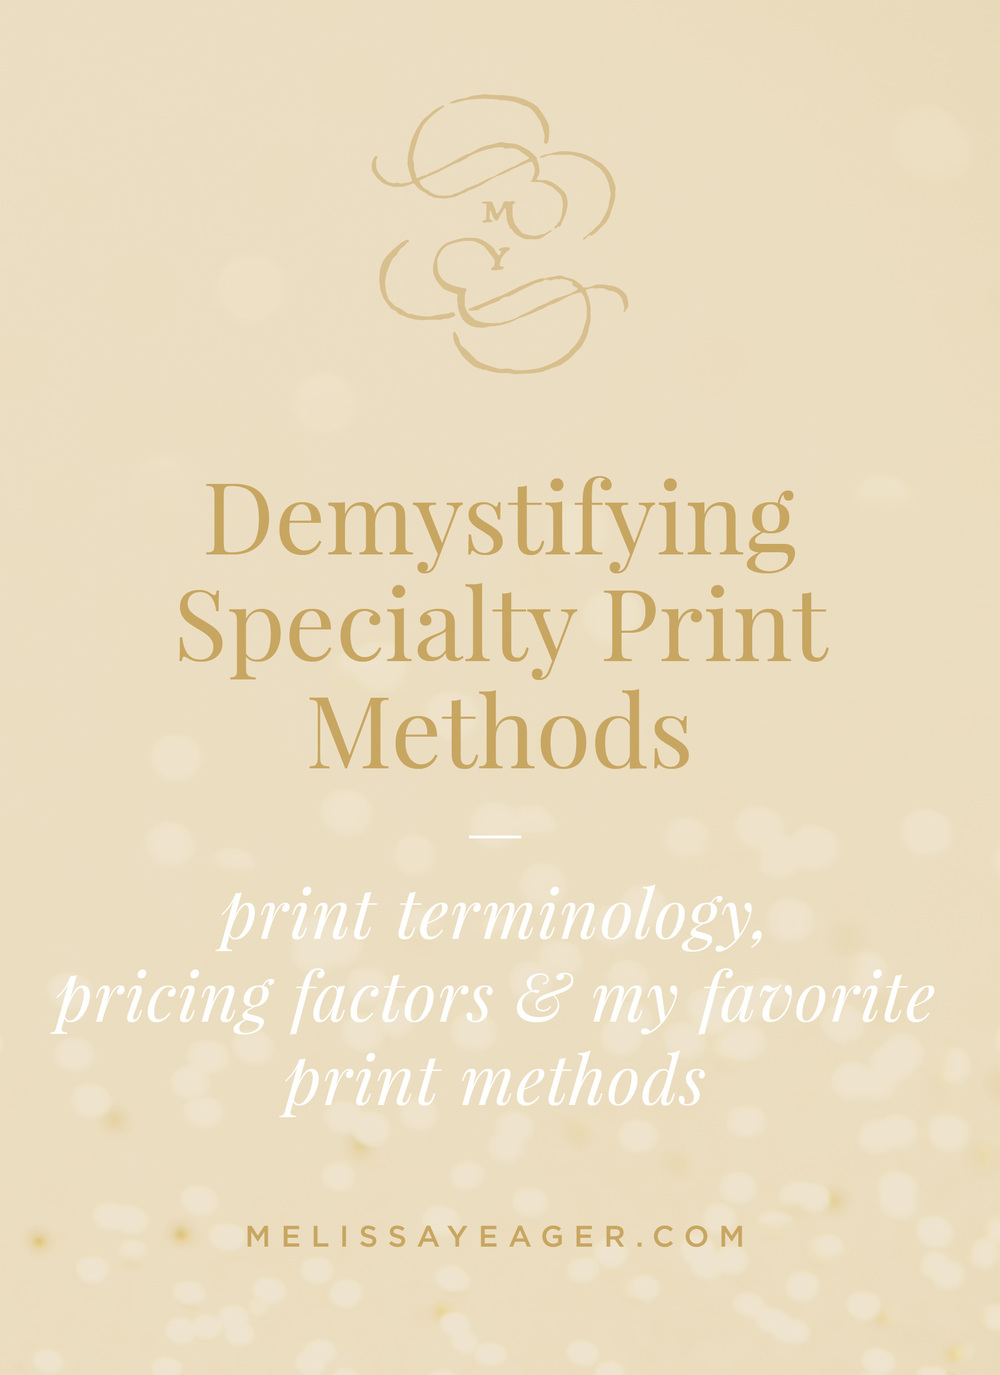 Demystifying Specialty Print Methods - print terminology, pricing factors & my favorite print methods such as letterpress, metallic foil stamping, and laser engraving